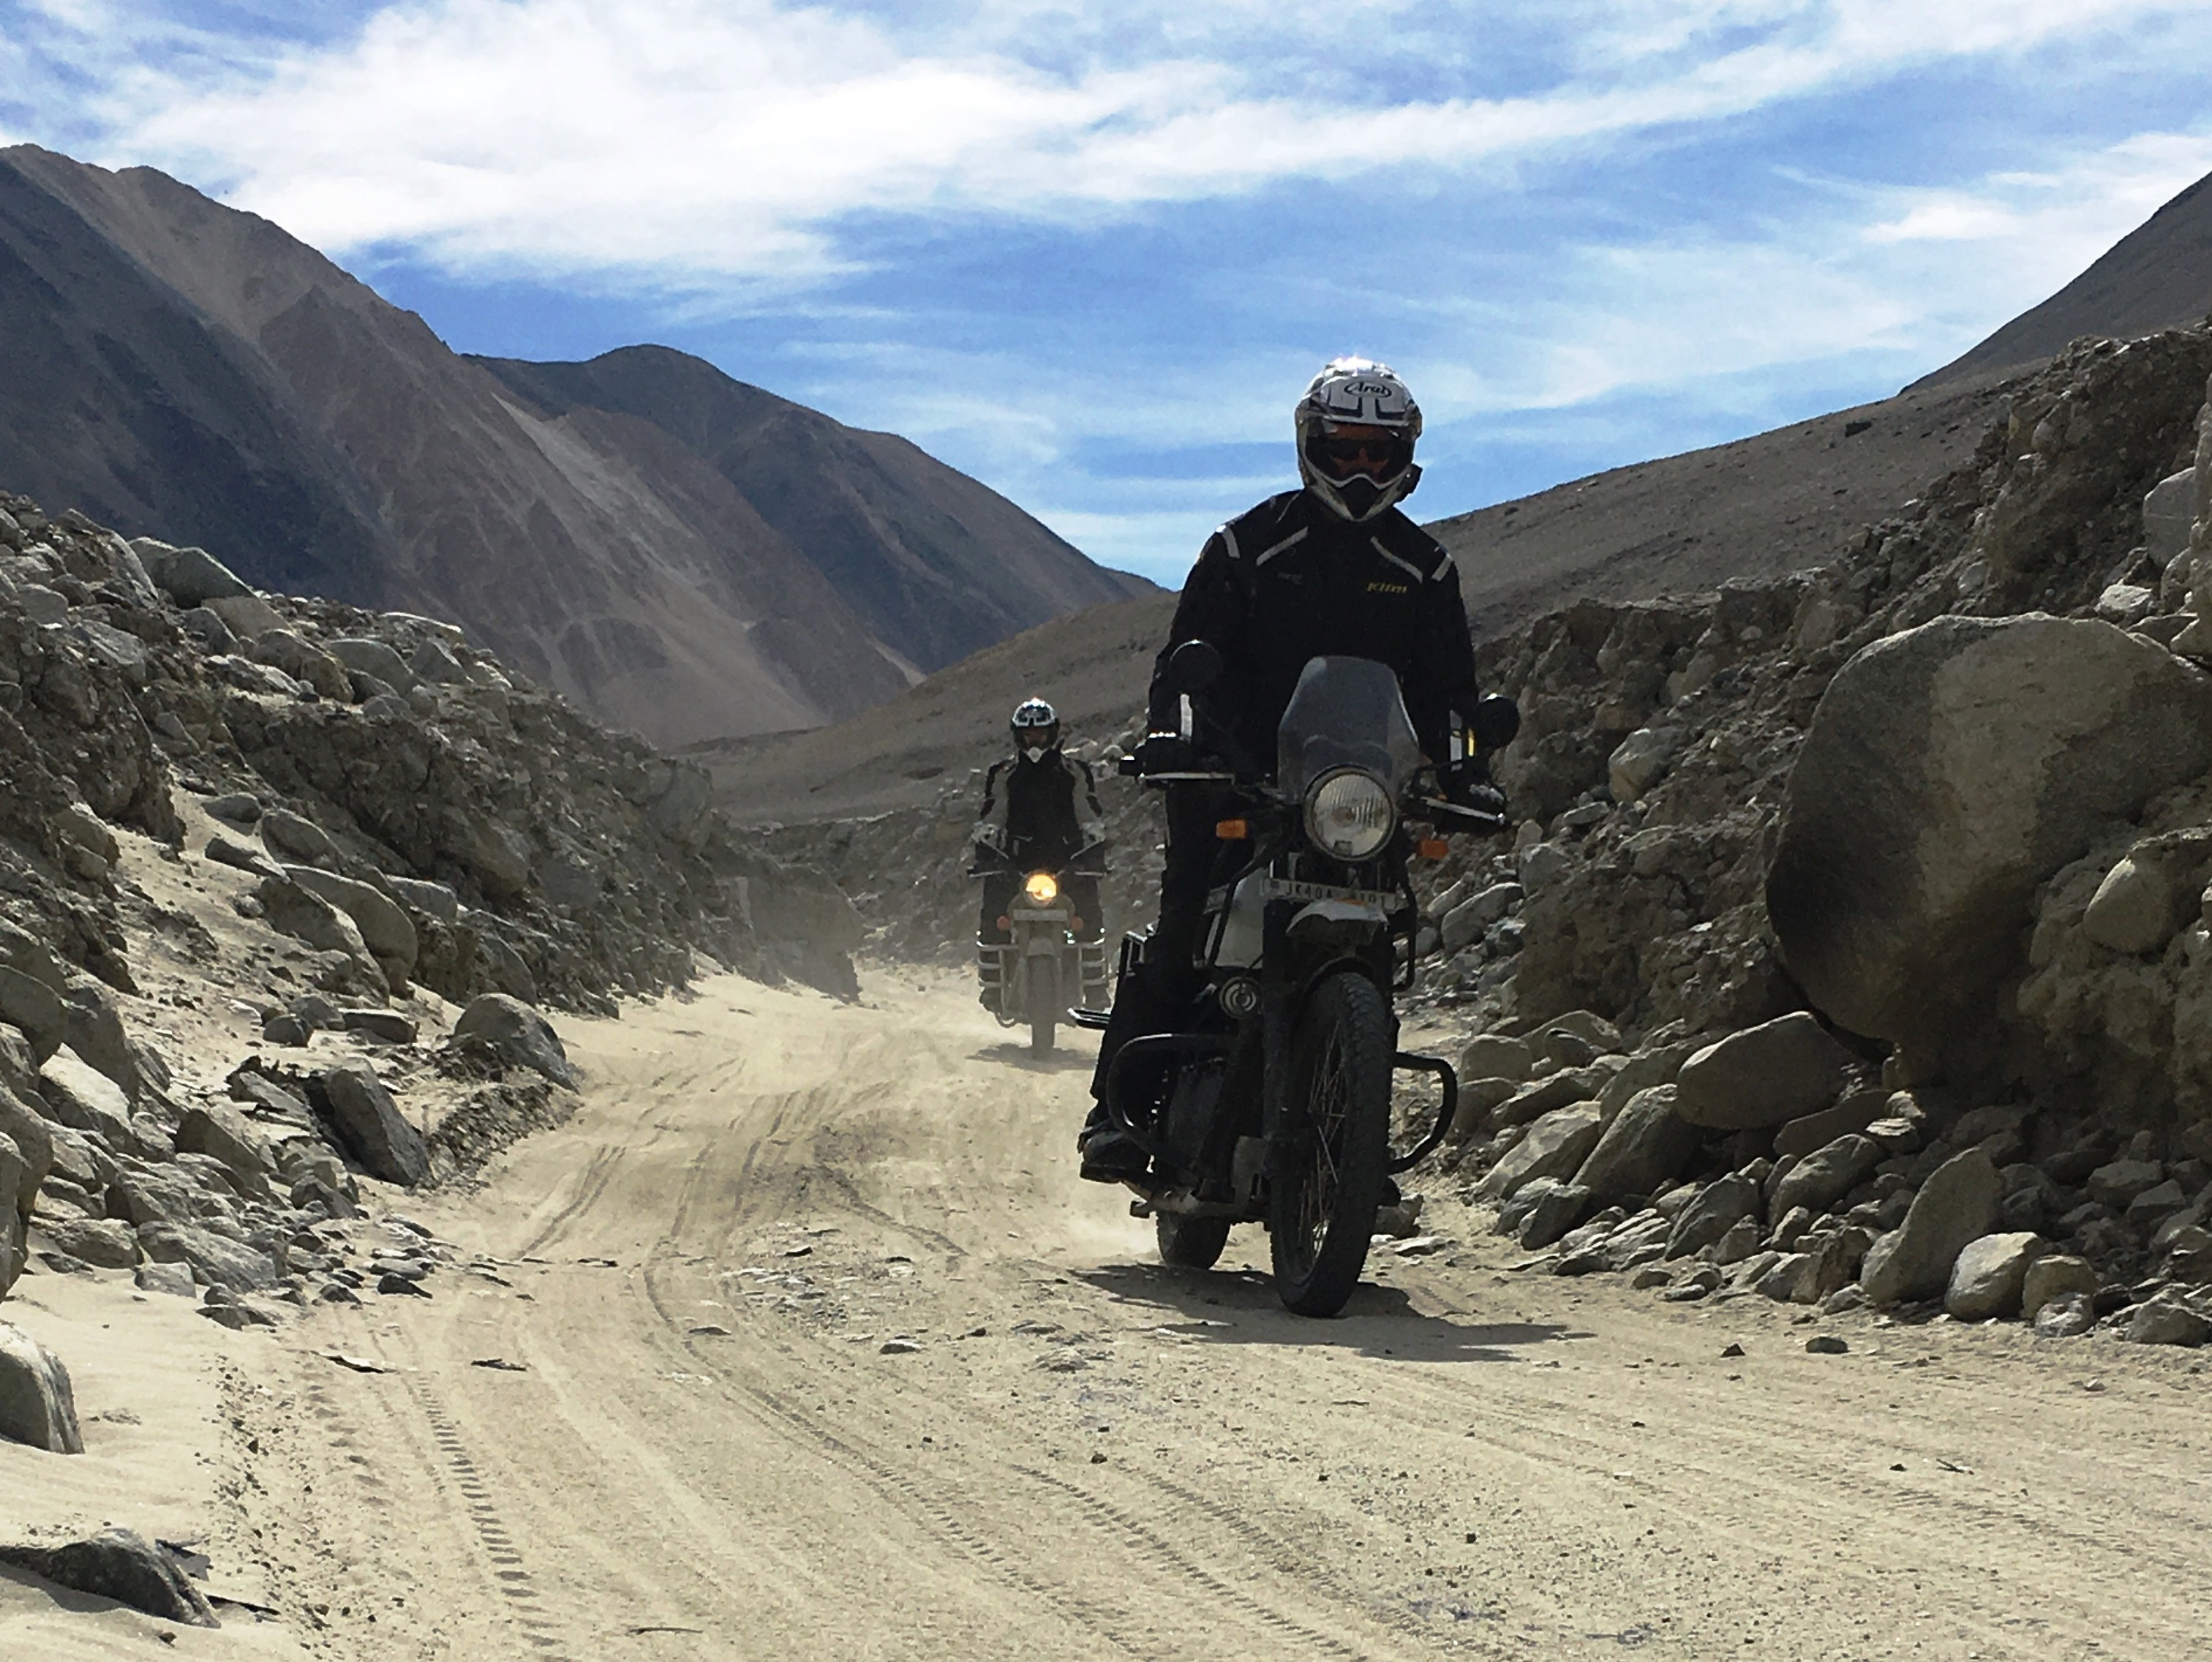 5 best motorcycle touring destinations in Asia that will leave riders astounded